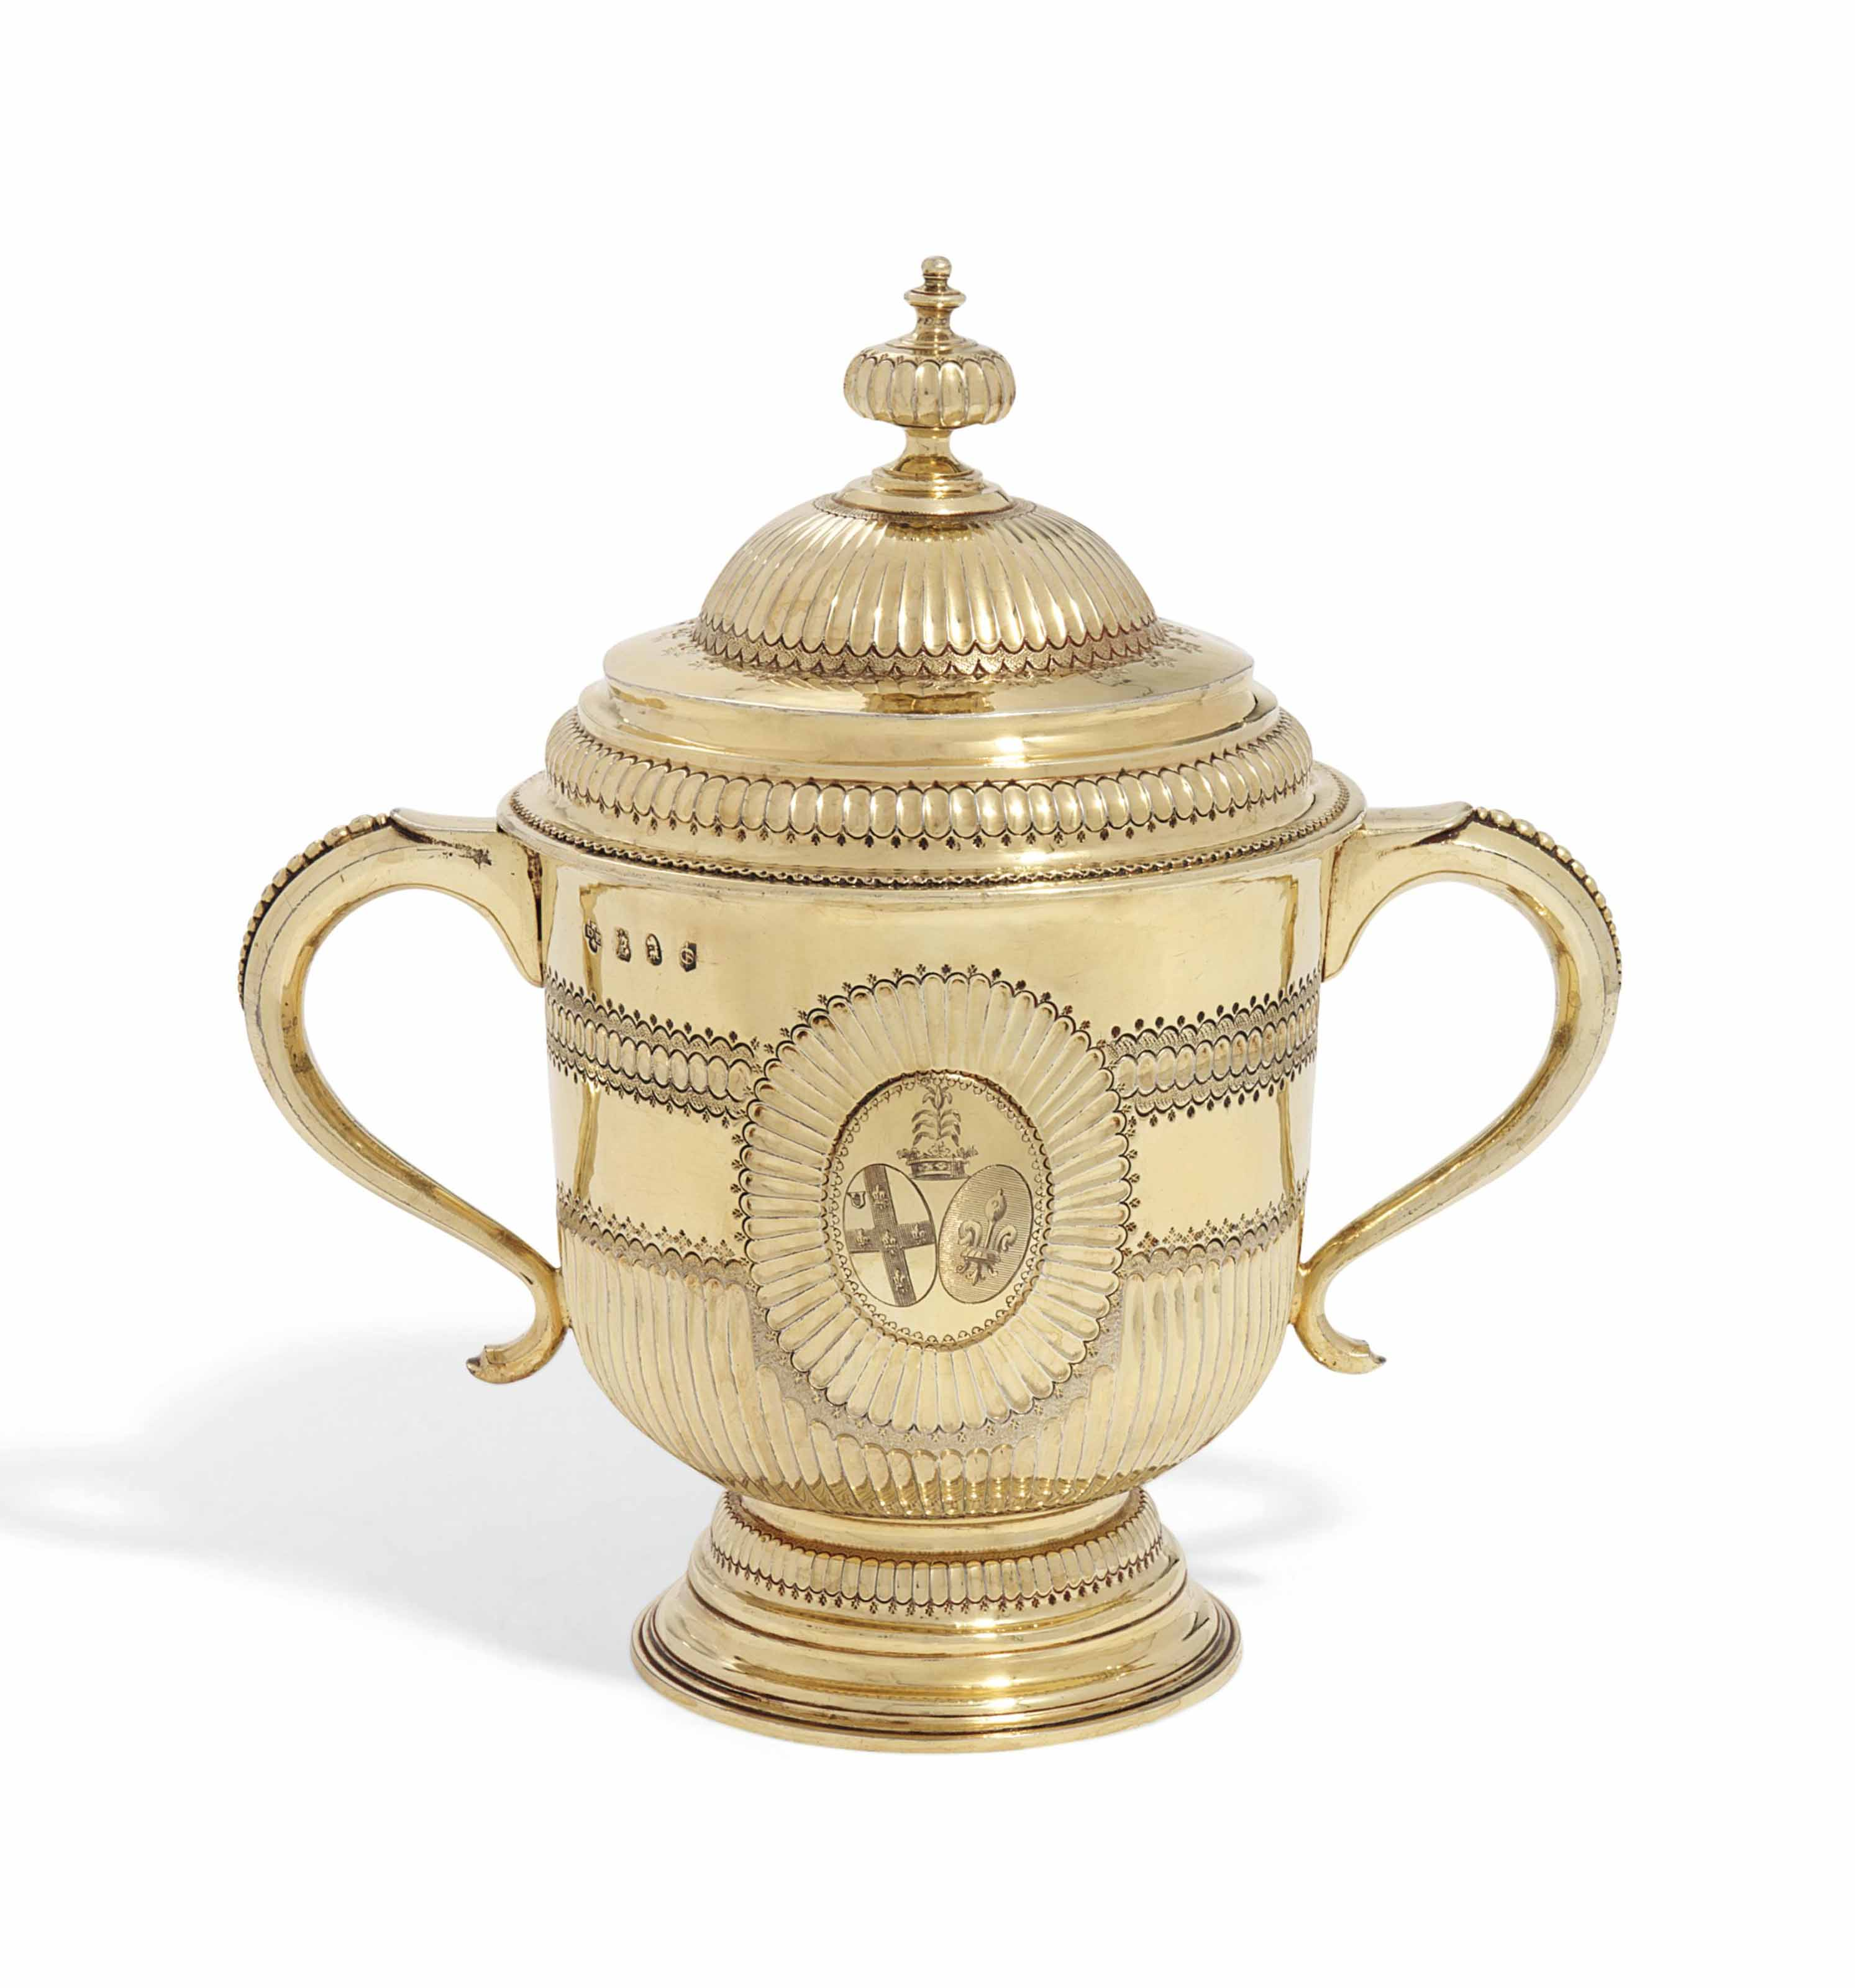 A QUEEN ANNE SILVER-GILT CUP AND COVER